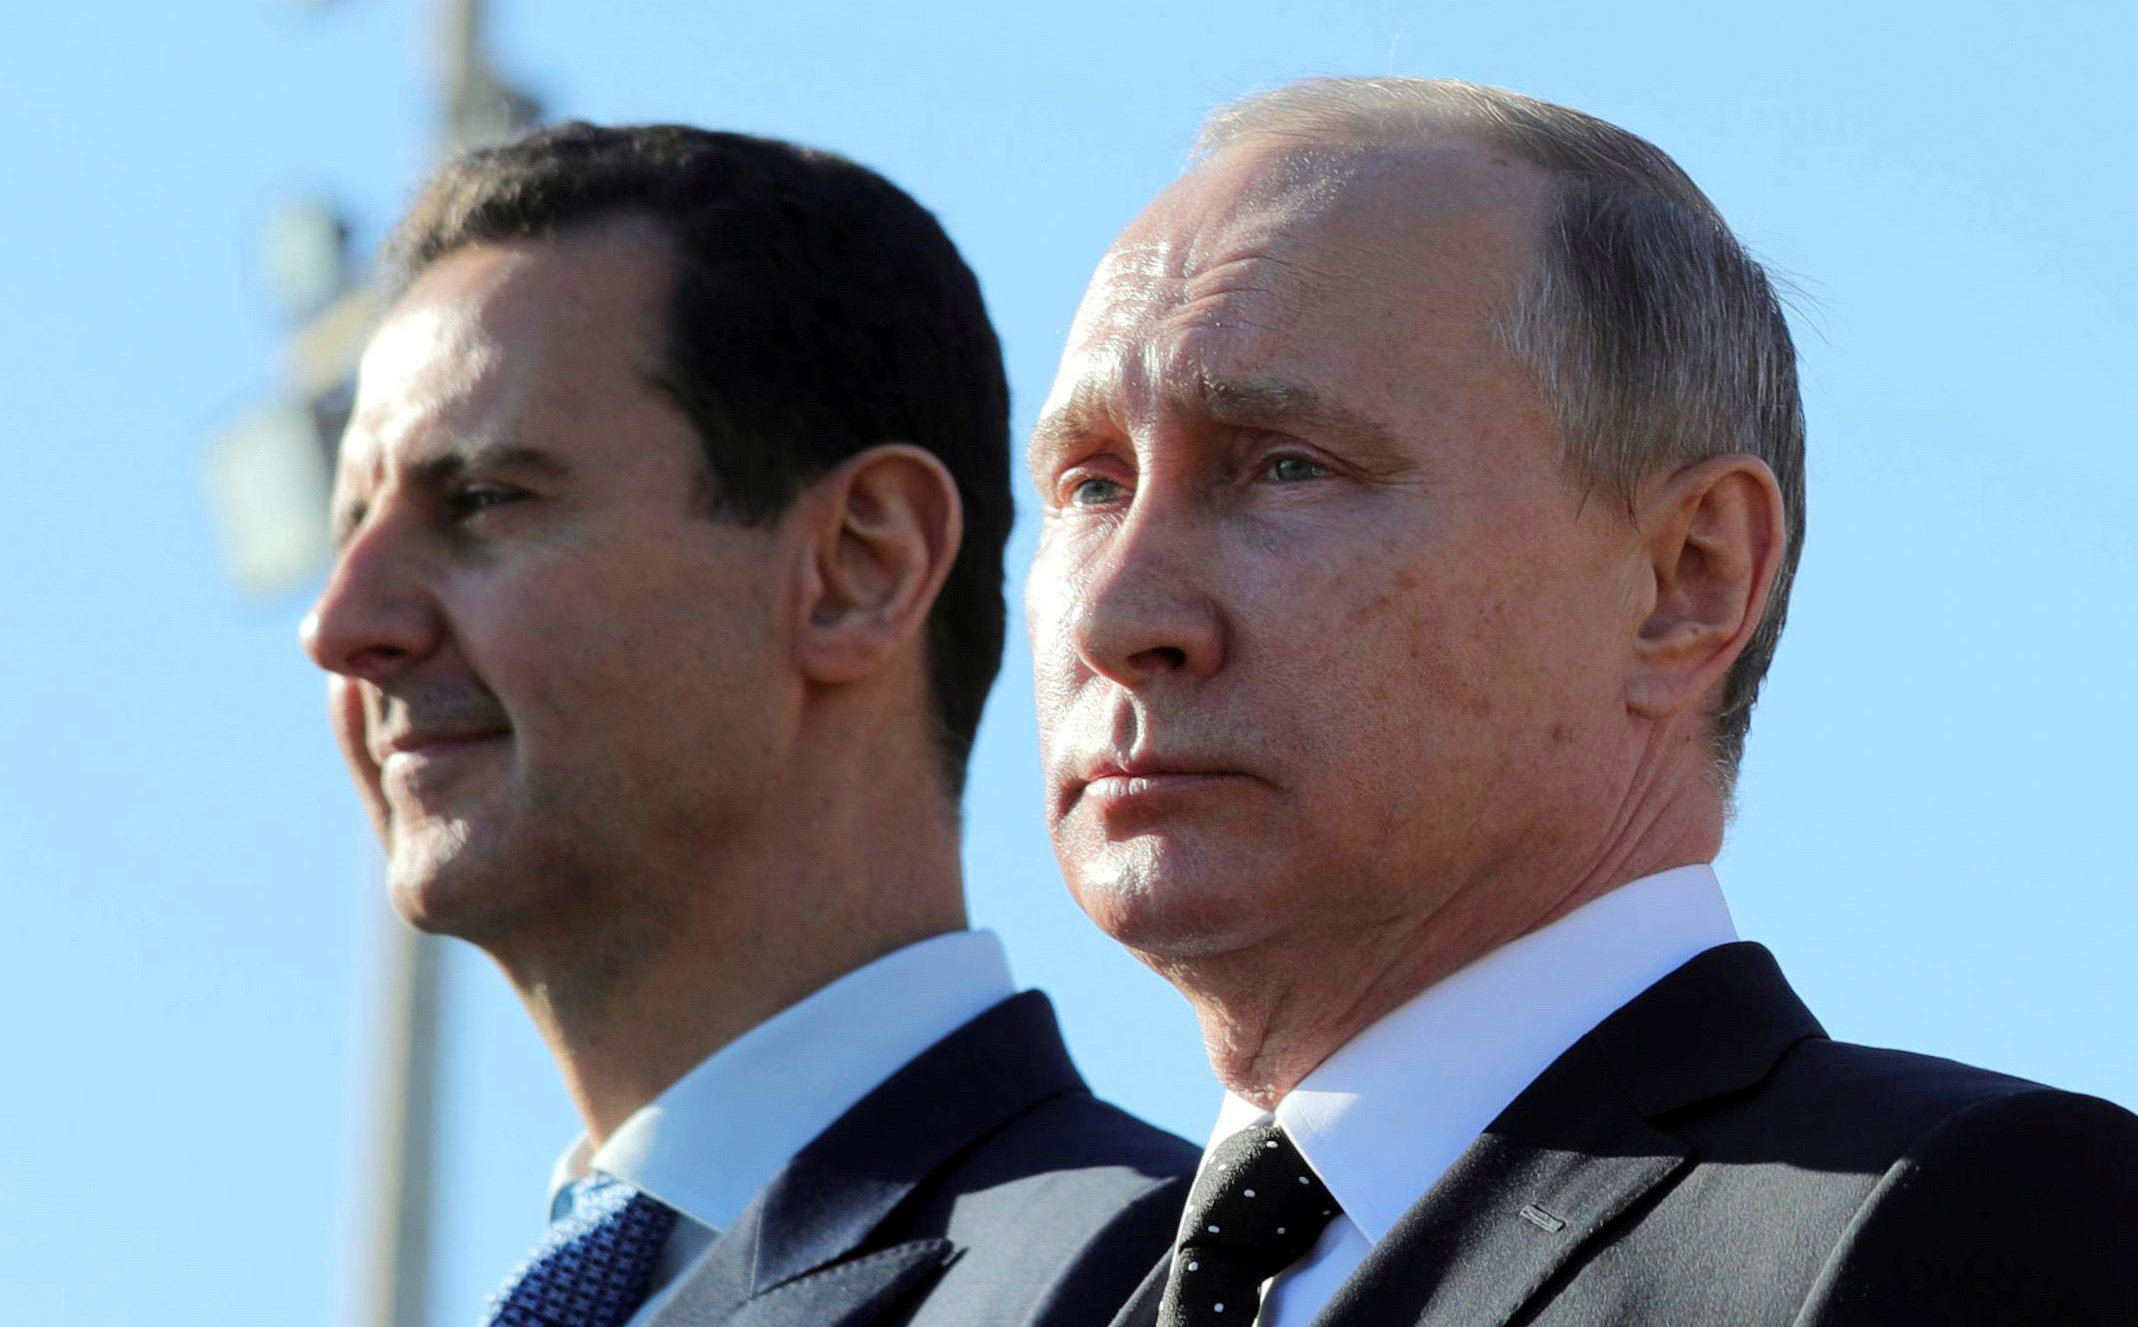 Russian President Vladimir Putin (R) and Syrian President Bashar al-Assad visit the Hmeymim air base in Latakia Province, Syria December 11, 2017. Picture taken December 11, 2017. To match Special Report RUSSIA-FLIGHTS/ Sputnik/Mikhail Klimentyev/ via REUTERS/File Photo